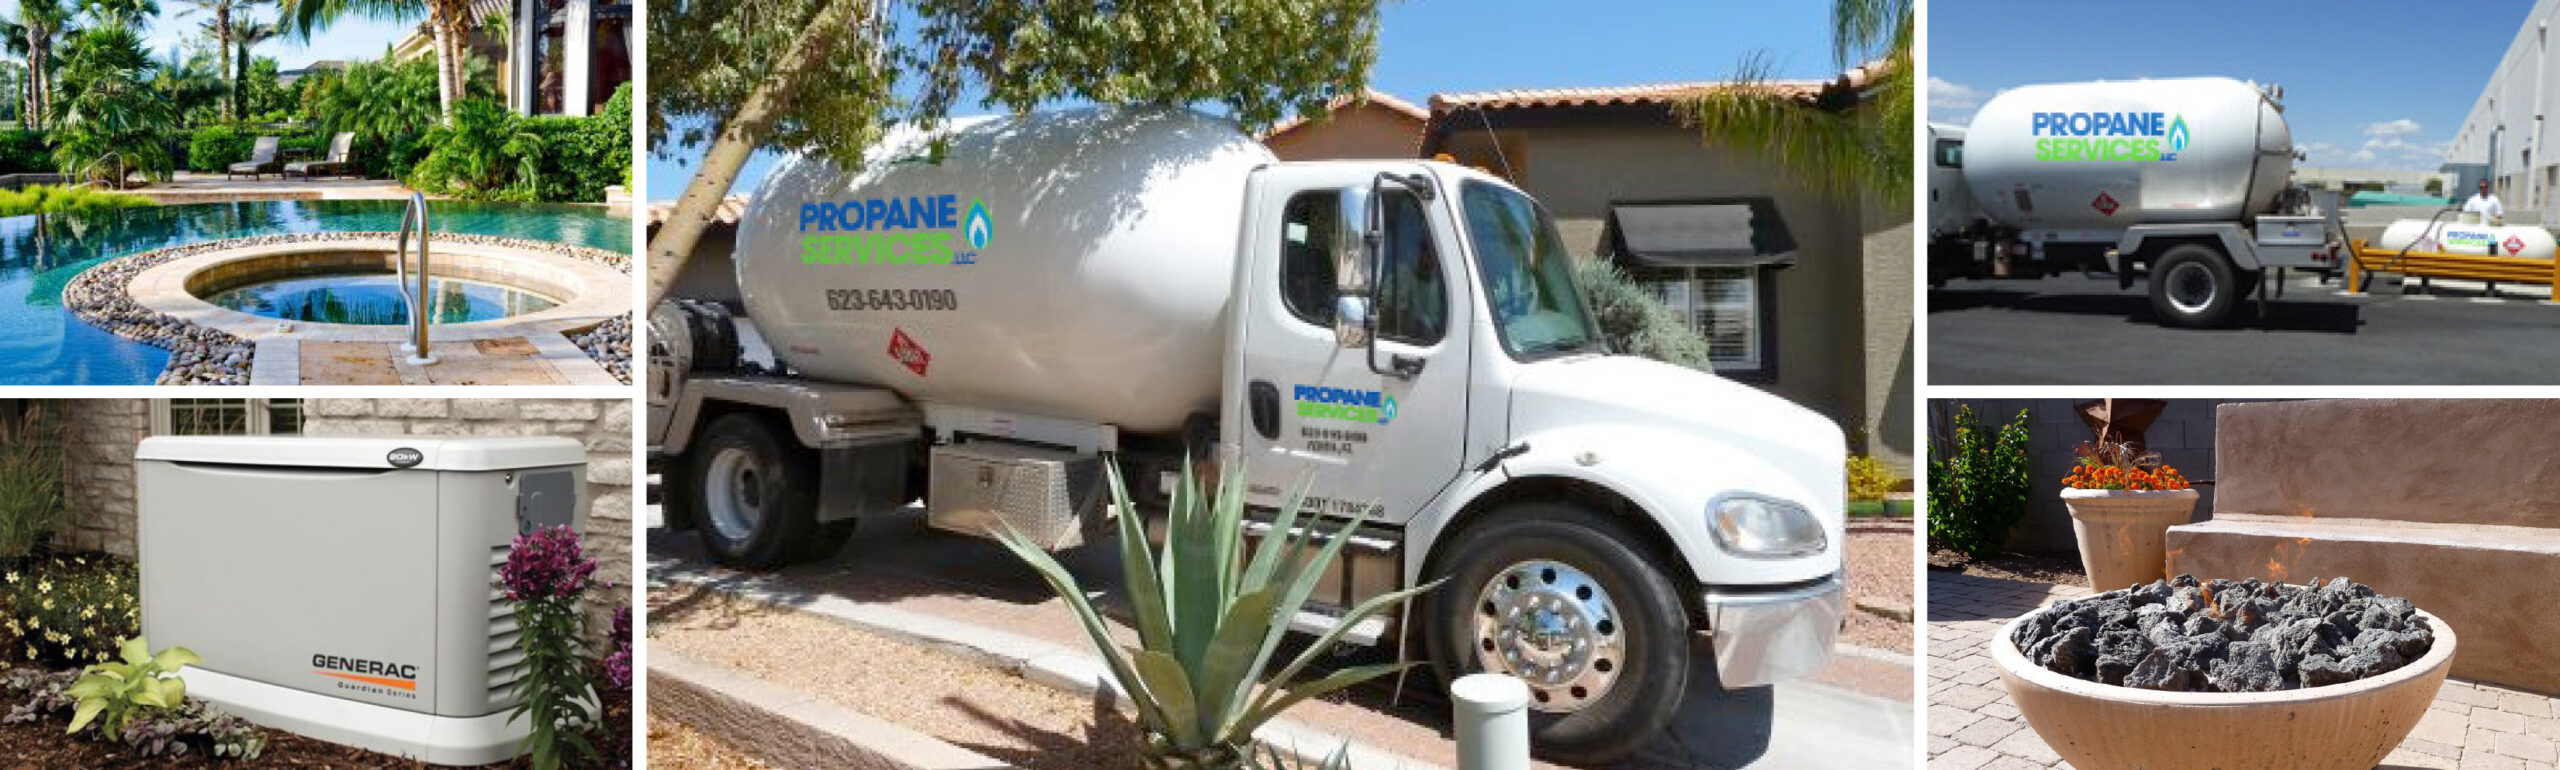 Propane Services, LLC is one of the best!